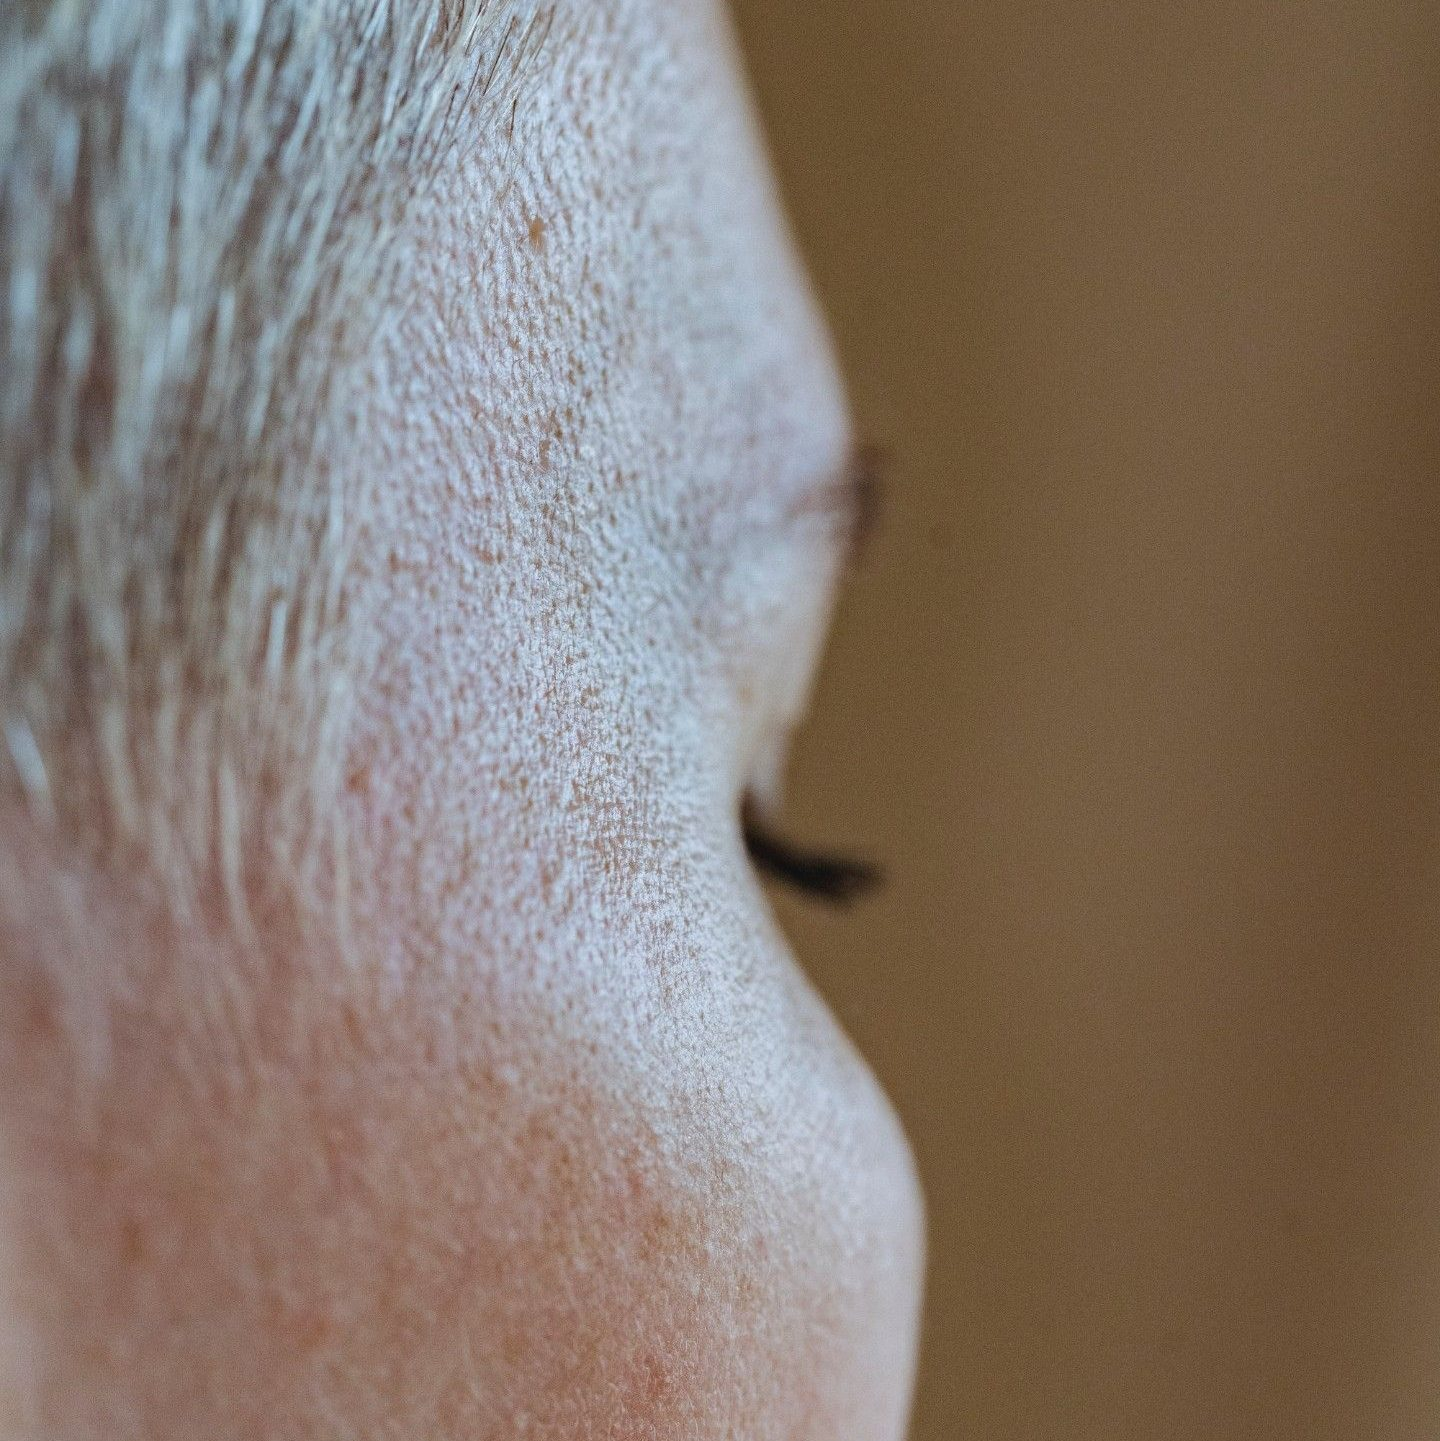 How to minimise large pores